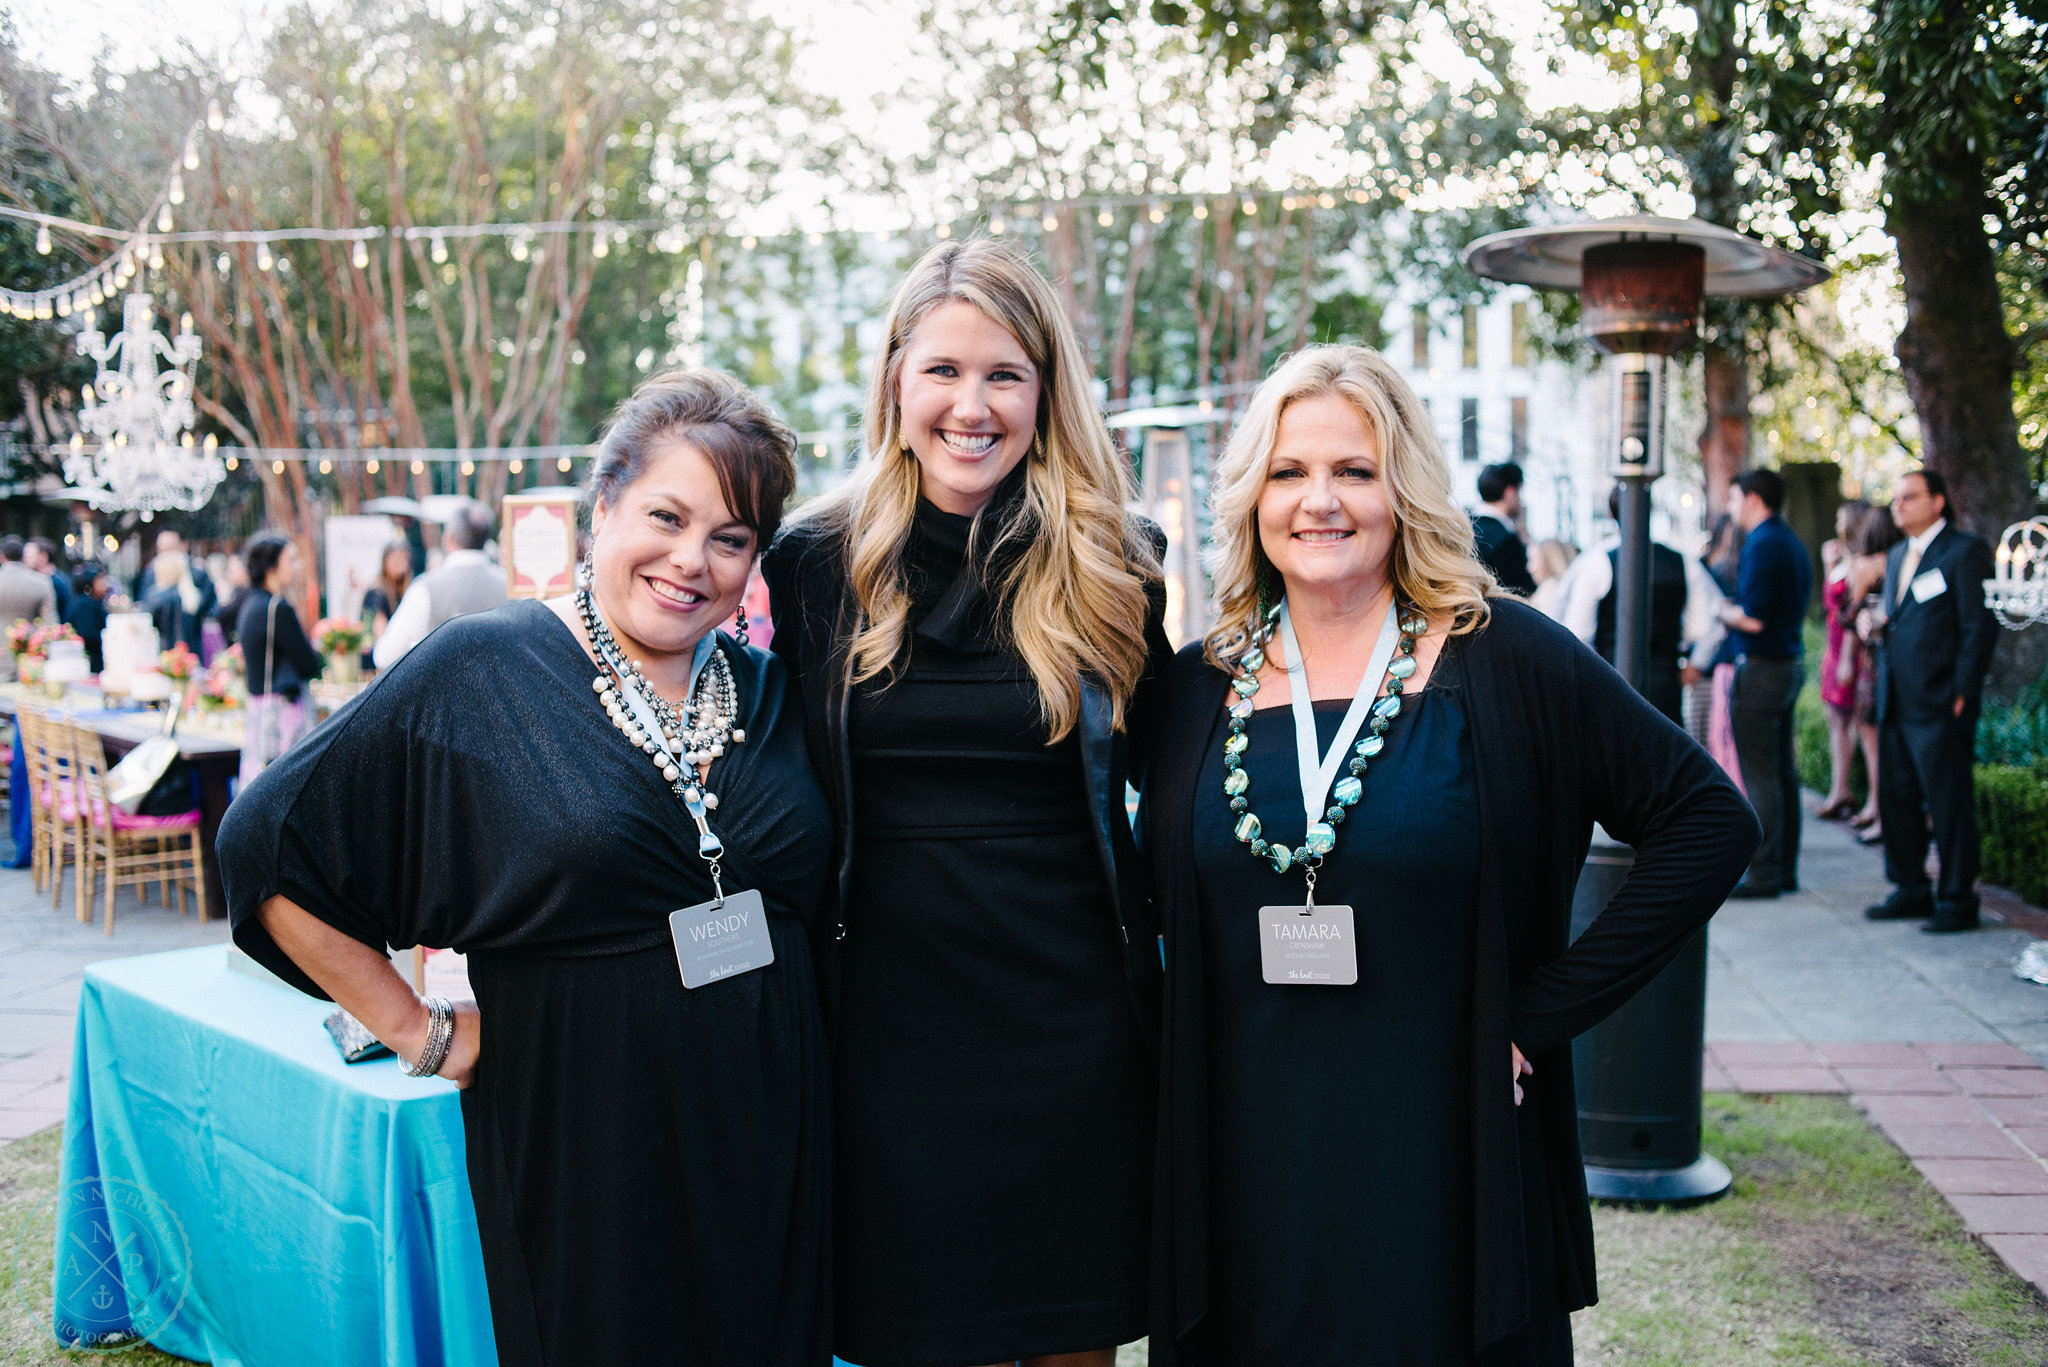 The lovely ladies of  The Knot  and sponsors of the 2014 Annual Market Mixer.